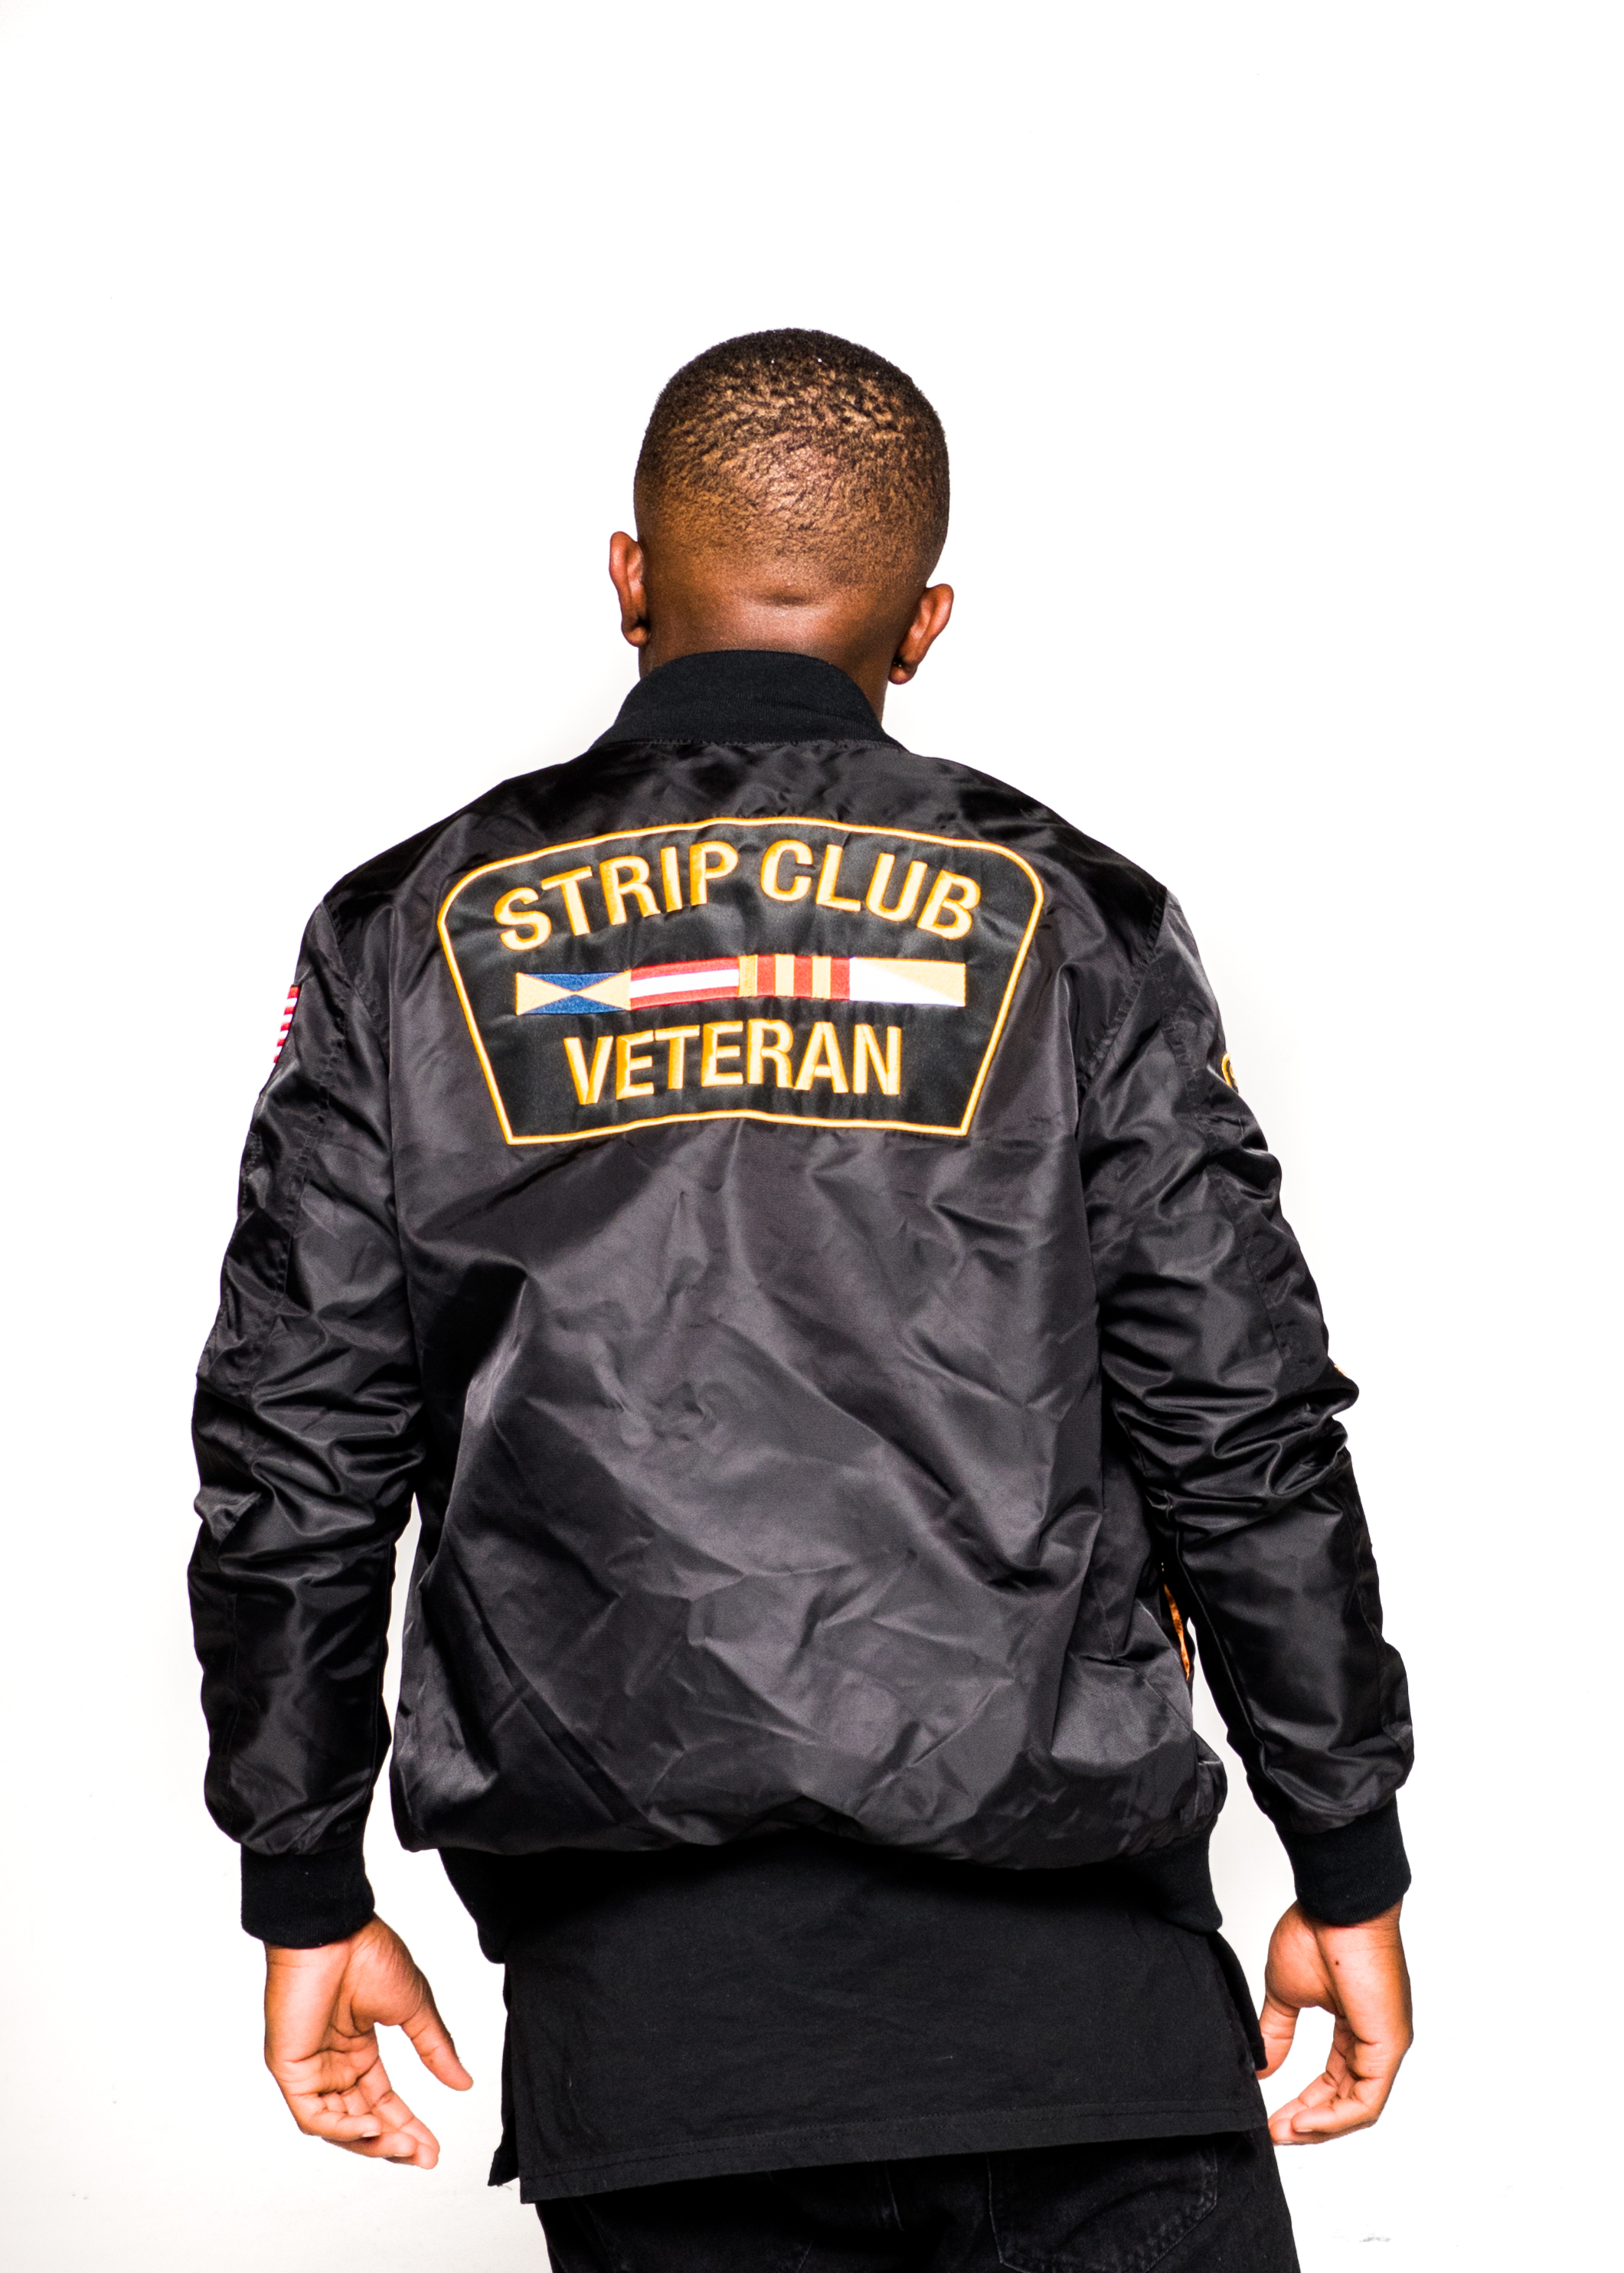 strip club vets male models-1550965.jpg